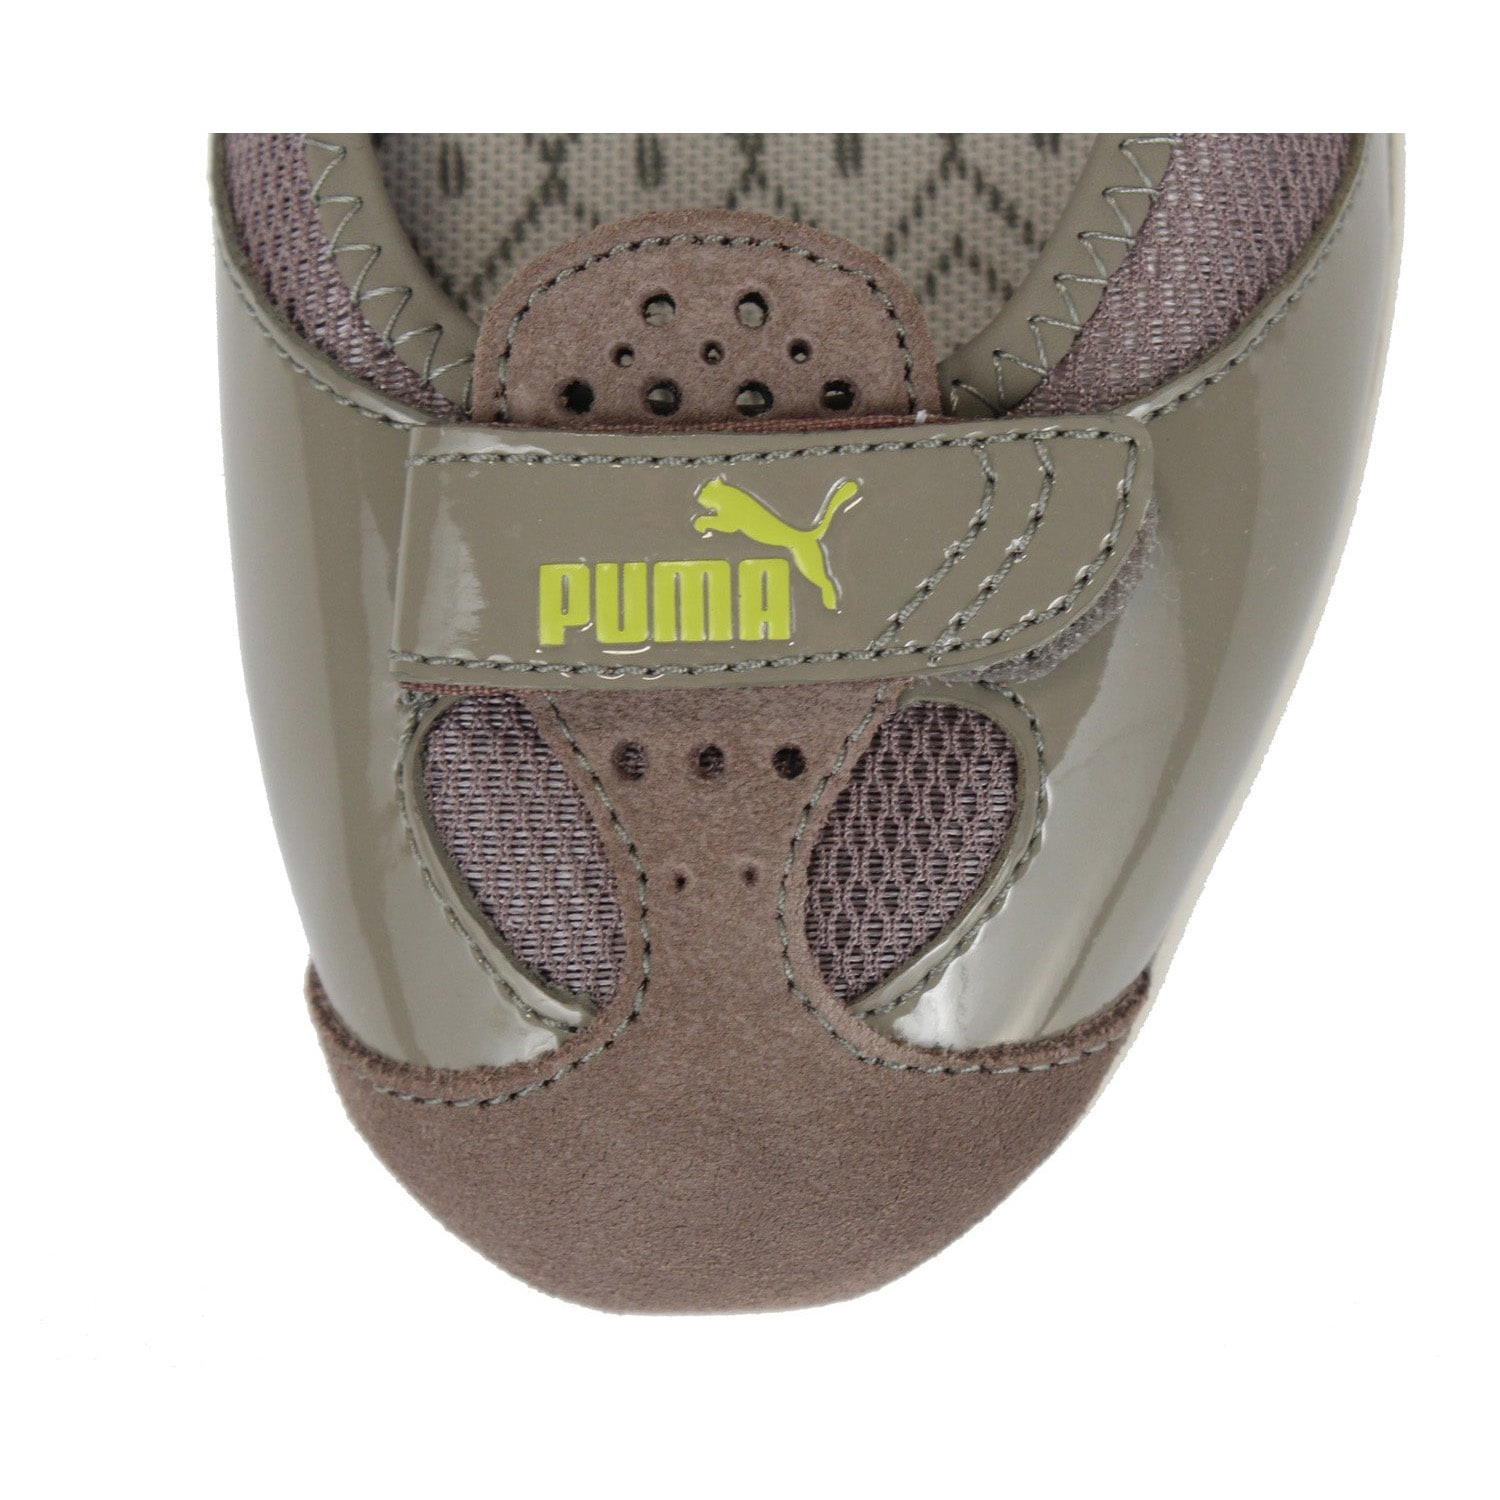 68c578e26b9 Shop Puma Women s  Zandy Native  Leather and Mesh Socklined Sporty Flats -  Free Shipping Today - Overstock - 7831710